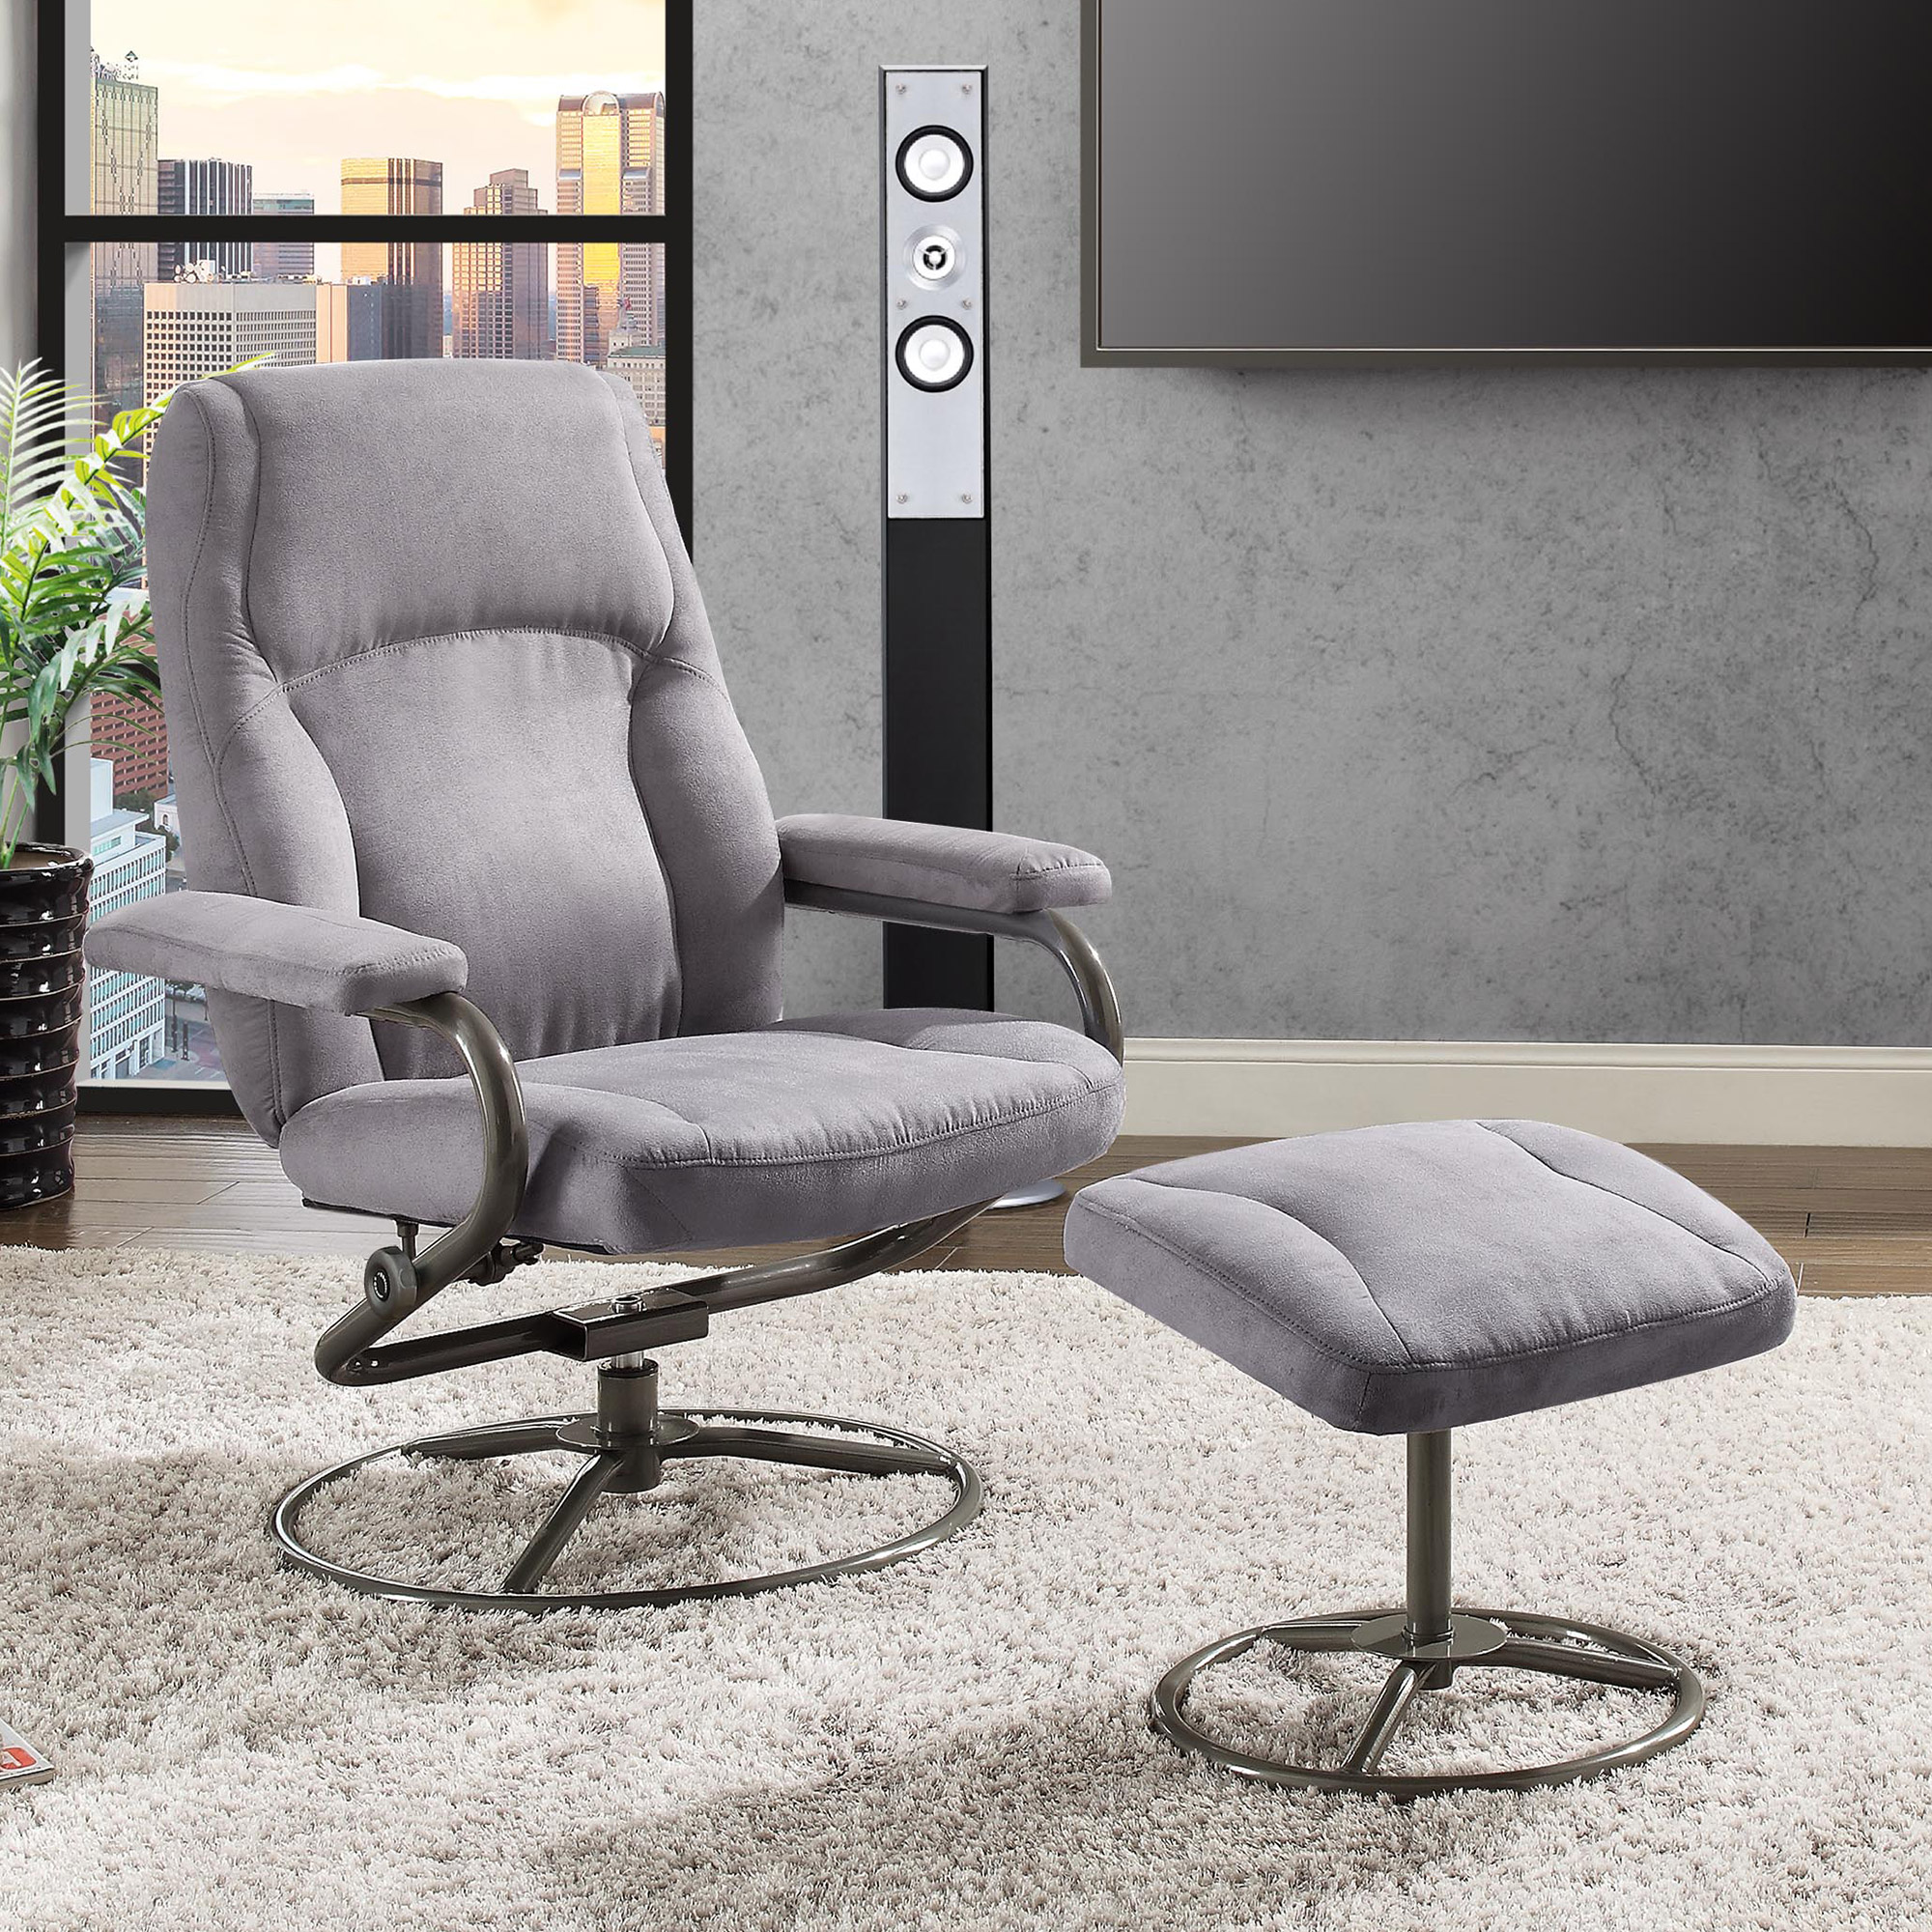 Recliner and Ottoman Set, Gray Microfiber Fabric Upholstery